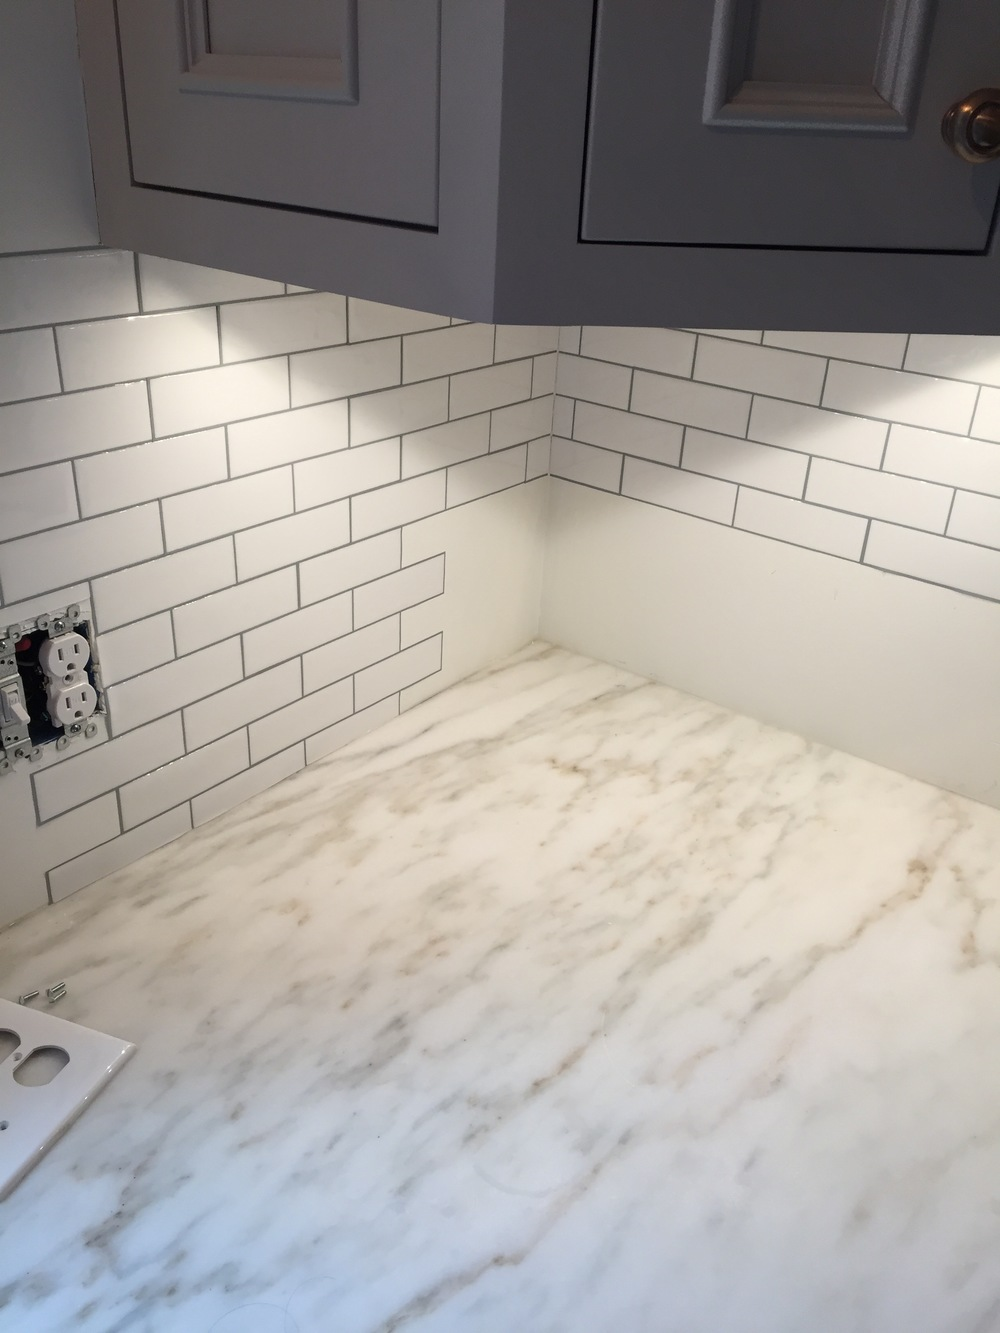 Diy peel and stick backsplash self styled tile backsplash in place dailygadgetfo Gallery